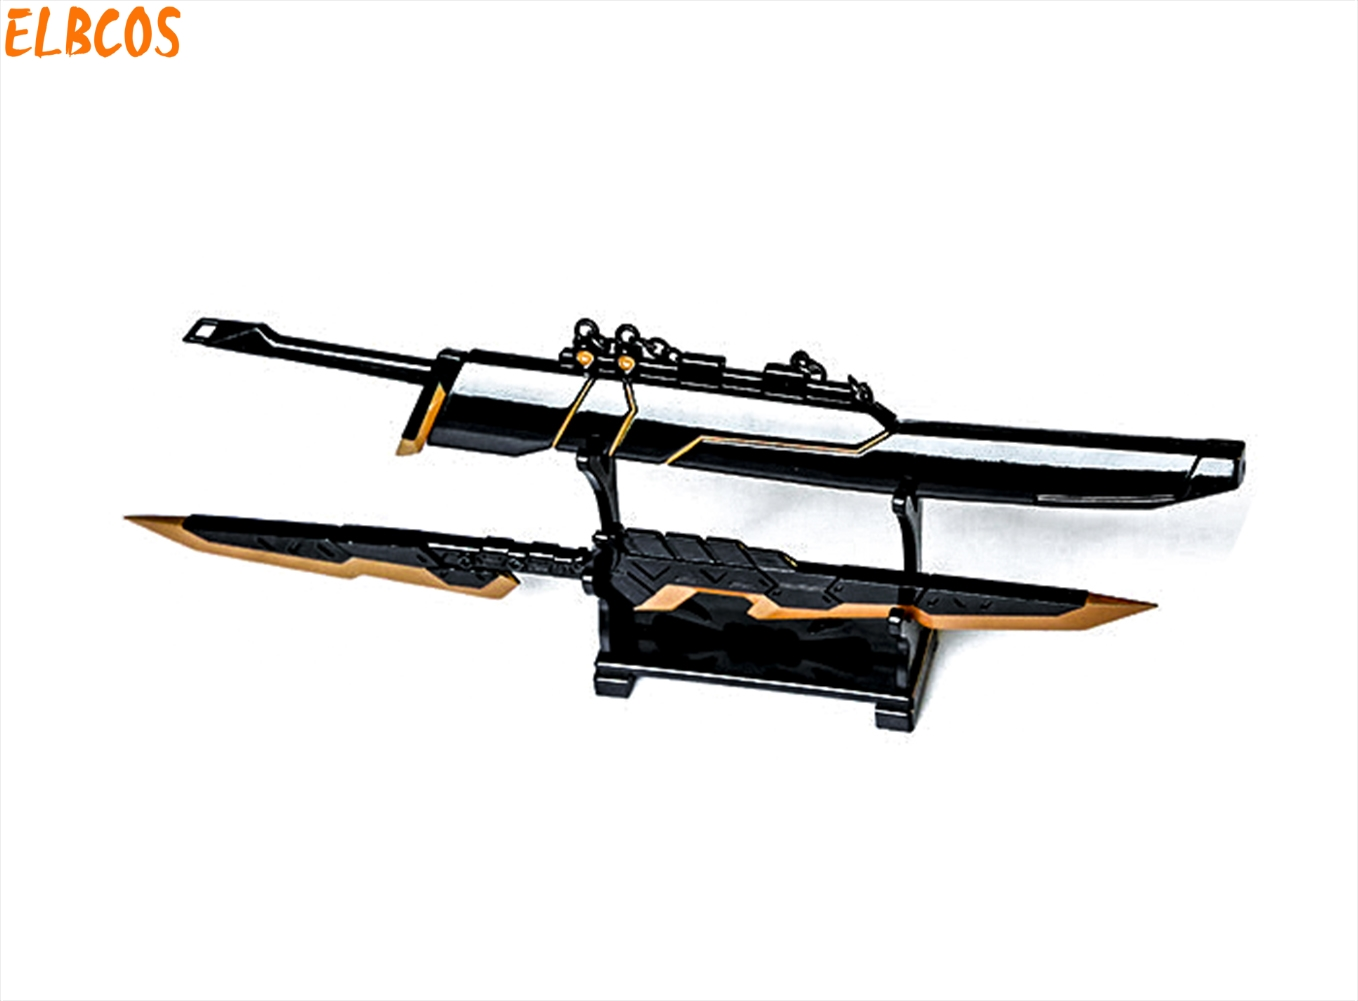 Duelist Fiora Yasuo Yi weapon 22cm/8.7 Sword model toys W/stand